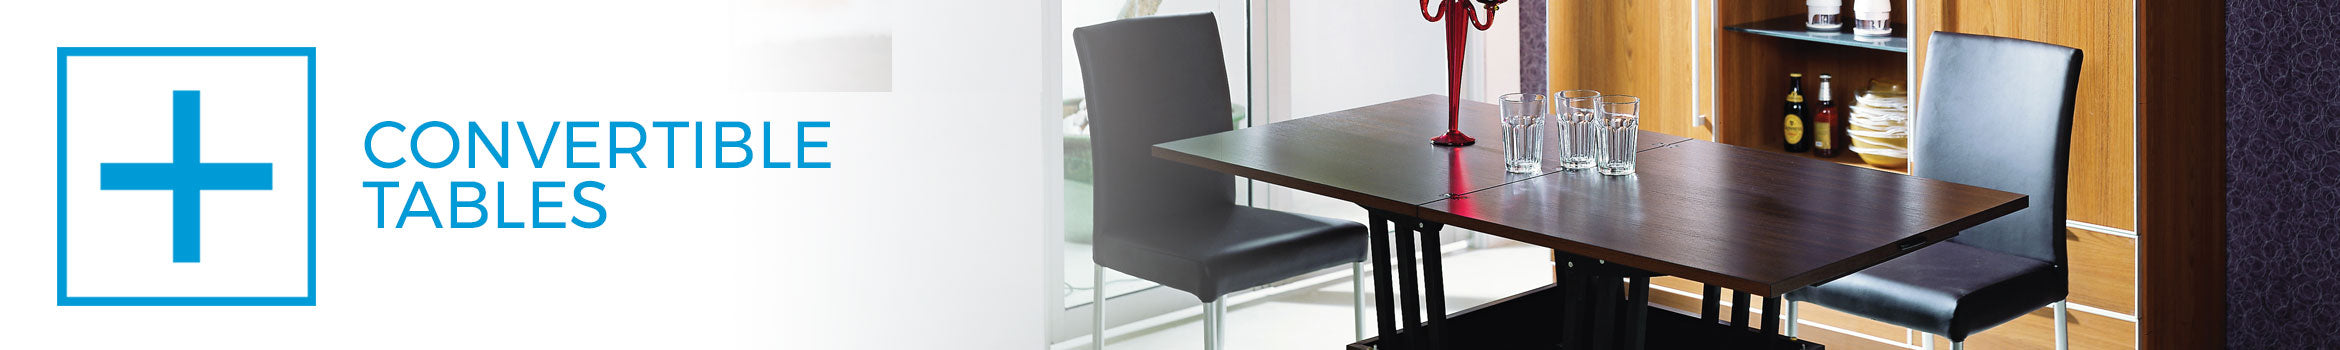 Convertible Tables - Small Space Plus - Toronto